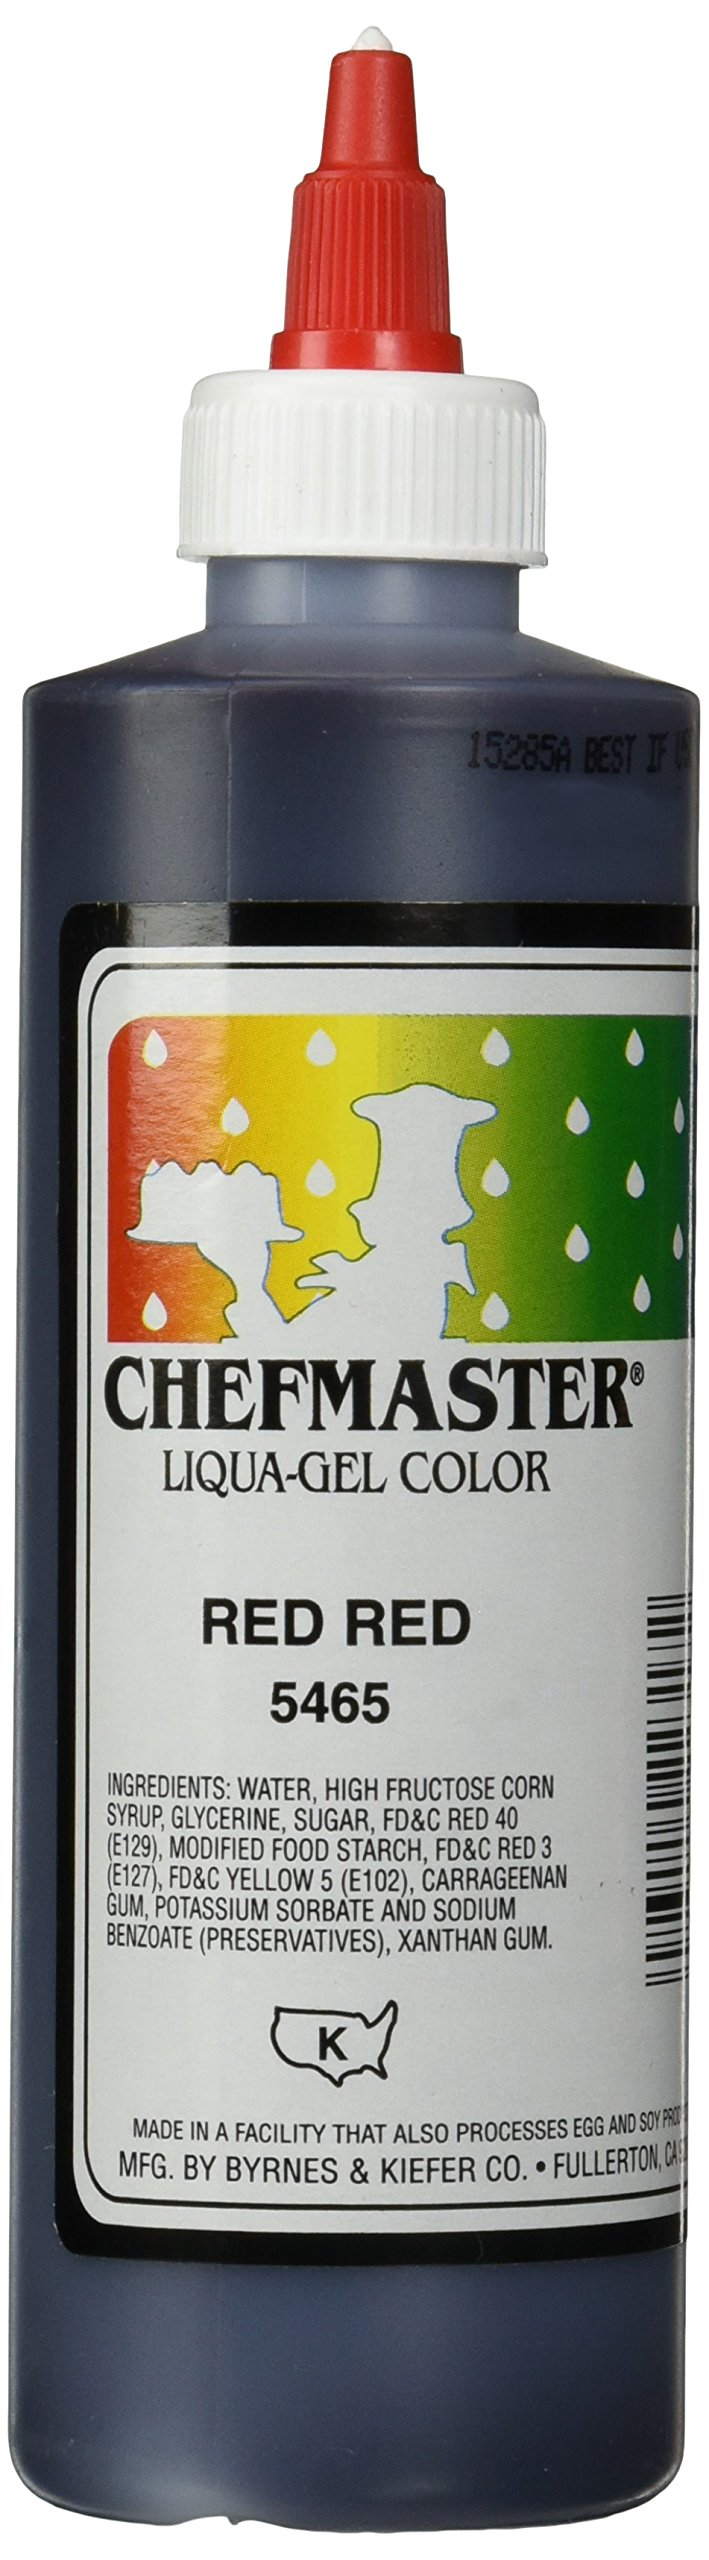 Chefmaster Liqua-Gel Food Color, 10.5-Ounce, Red